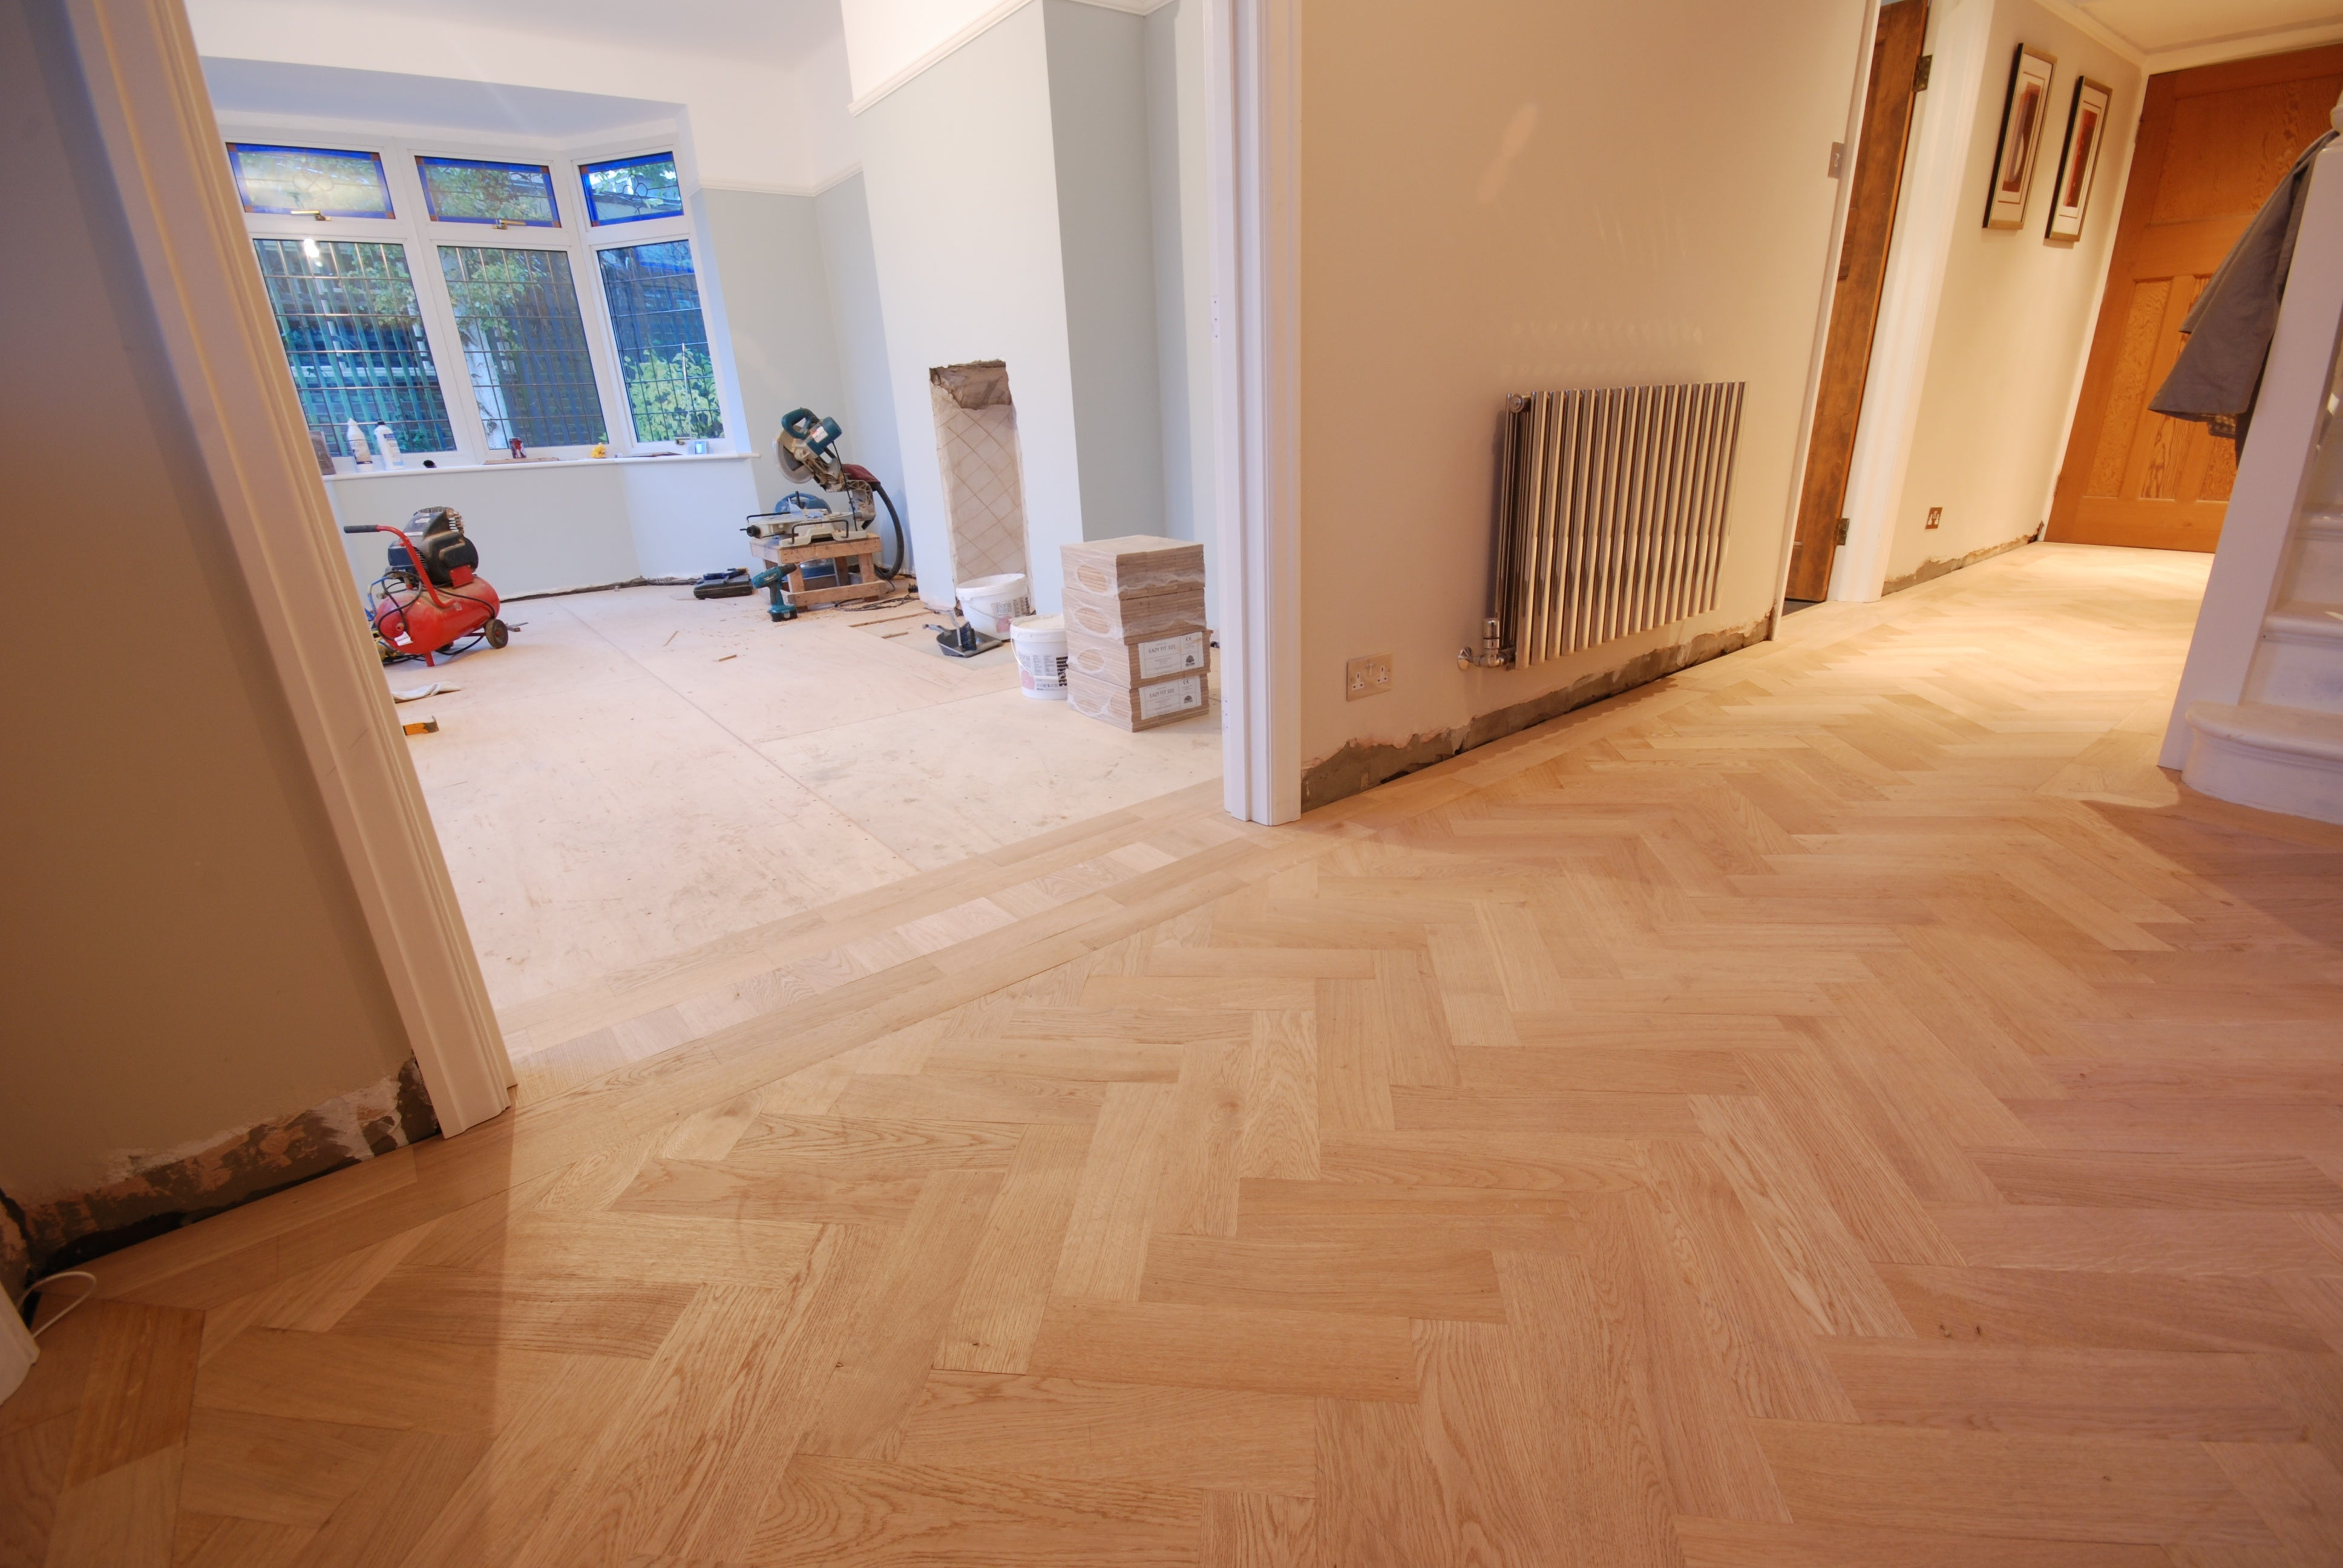 Overlay parquet flooring being fitted